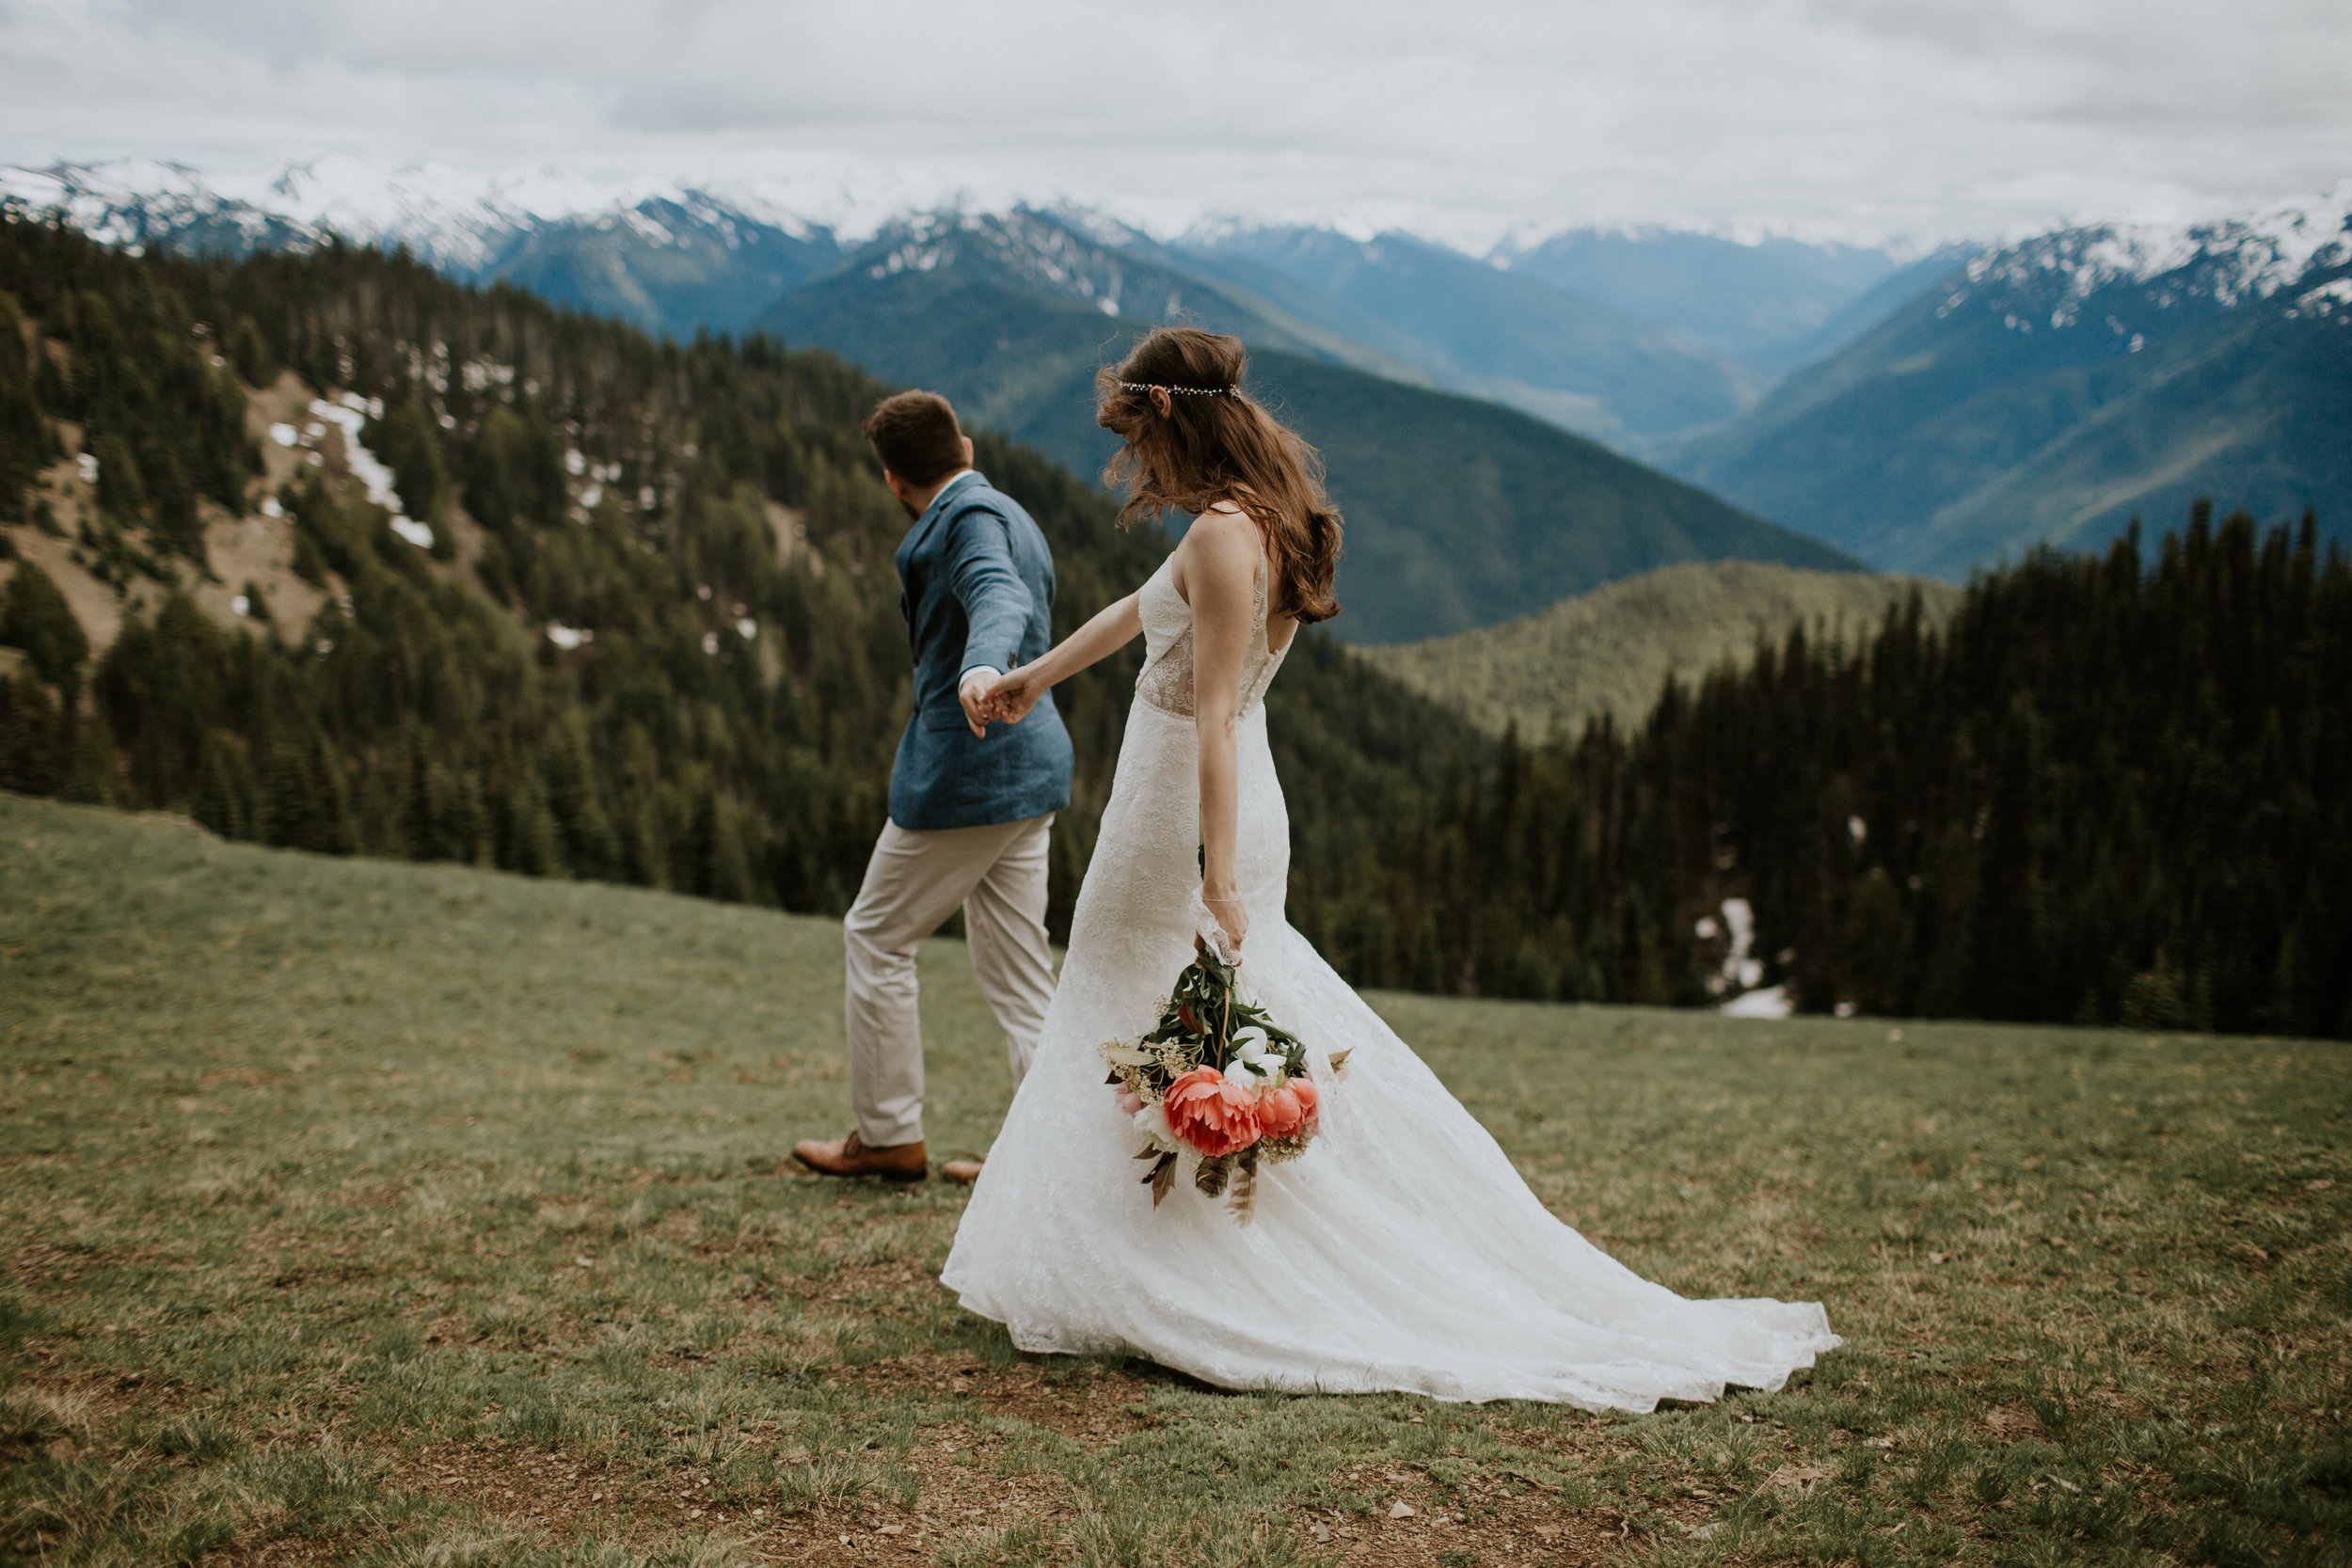 PNW-elopement-wedding-engagement-olympic national park-port angeles-hurricane ridge-lake crescent-kayla dawn photography- photographer-photography-kayladawnphoto-207.jpg